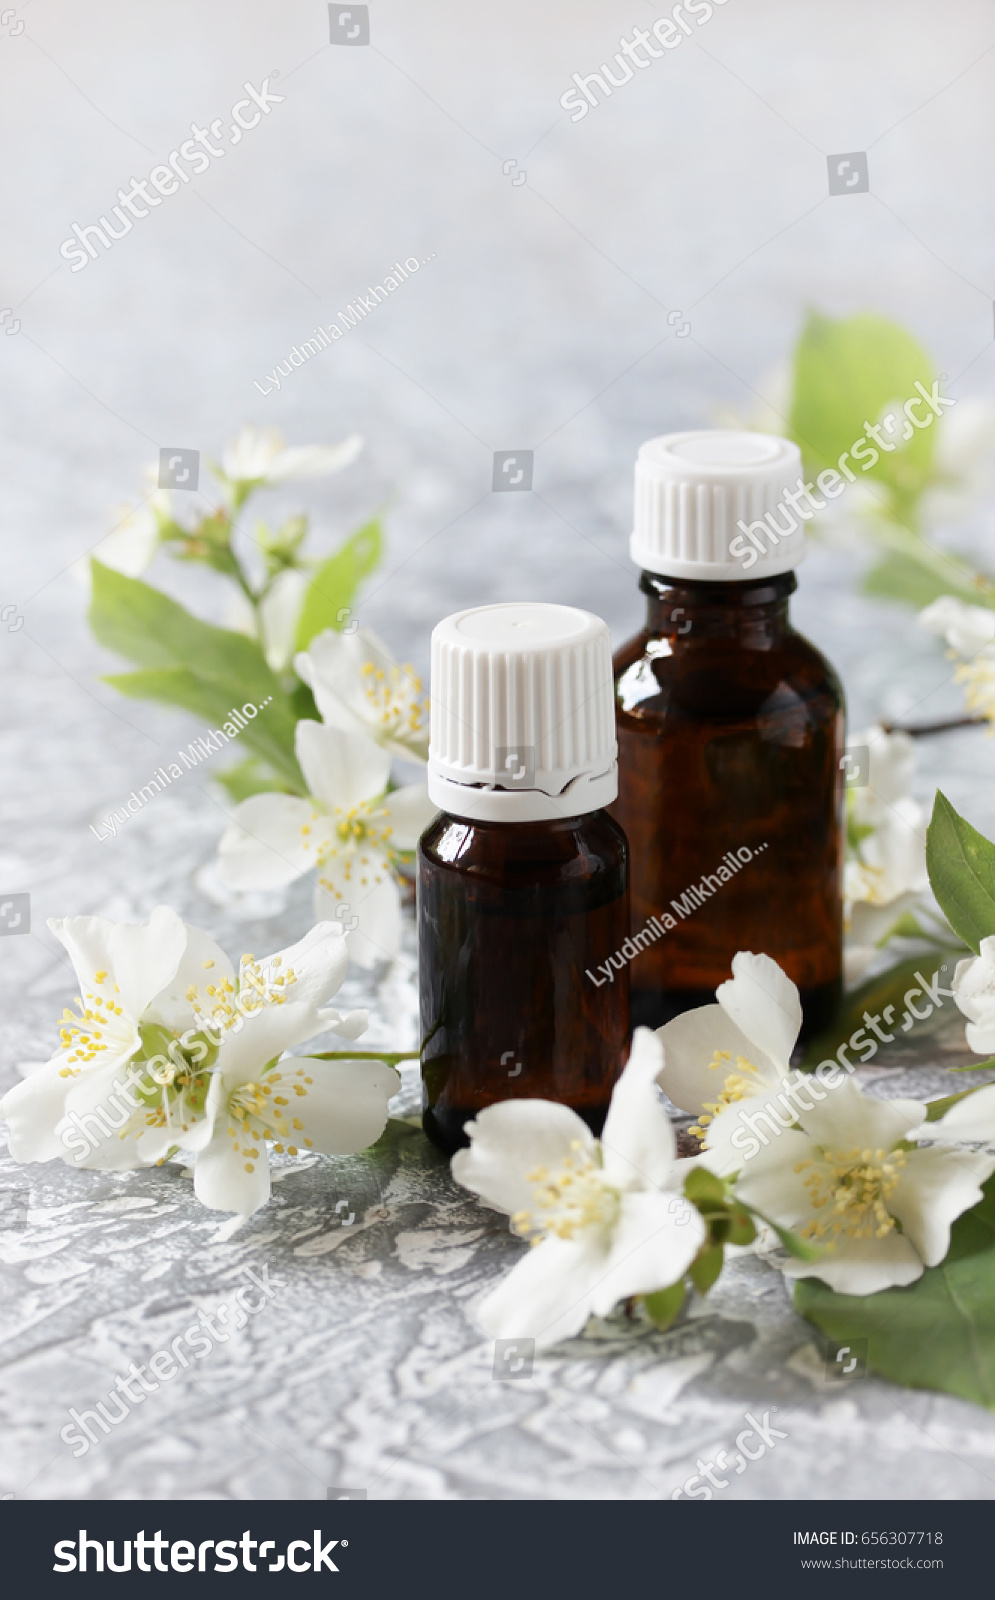 Oil of jasmine aromatherapy with jasmine oil jasmine flowers ez id 656307718 izmirmasajfo